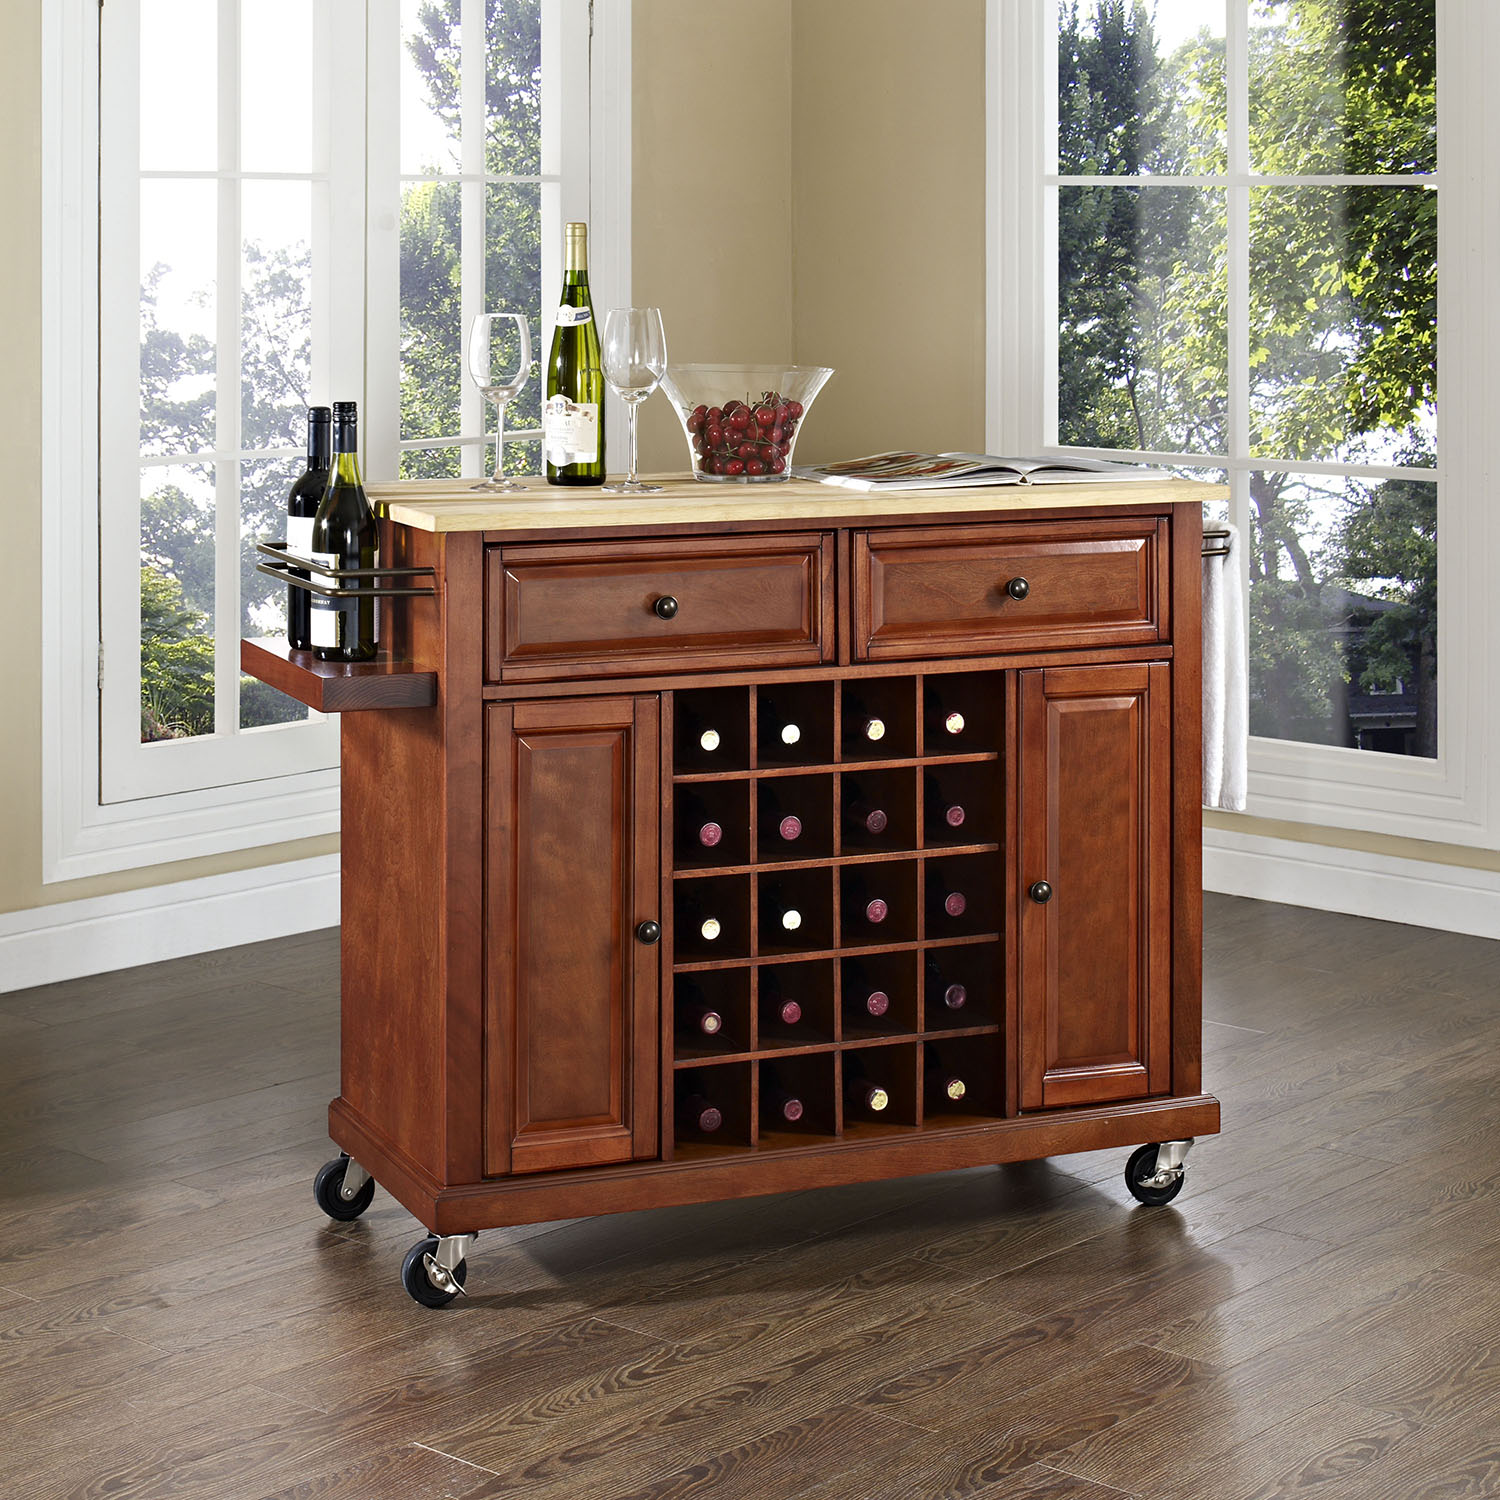 Natural Wood Top Wine Cart - Classic Cherry - CROS-KF31001ECH